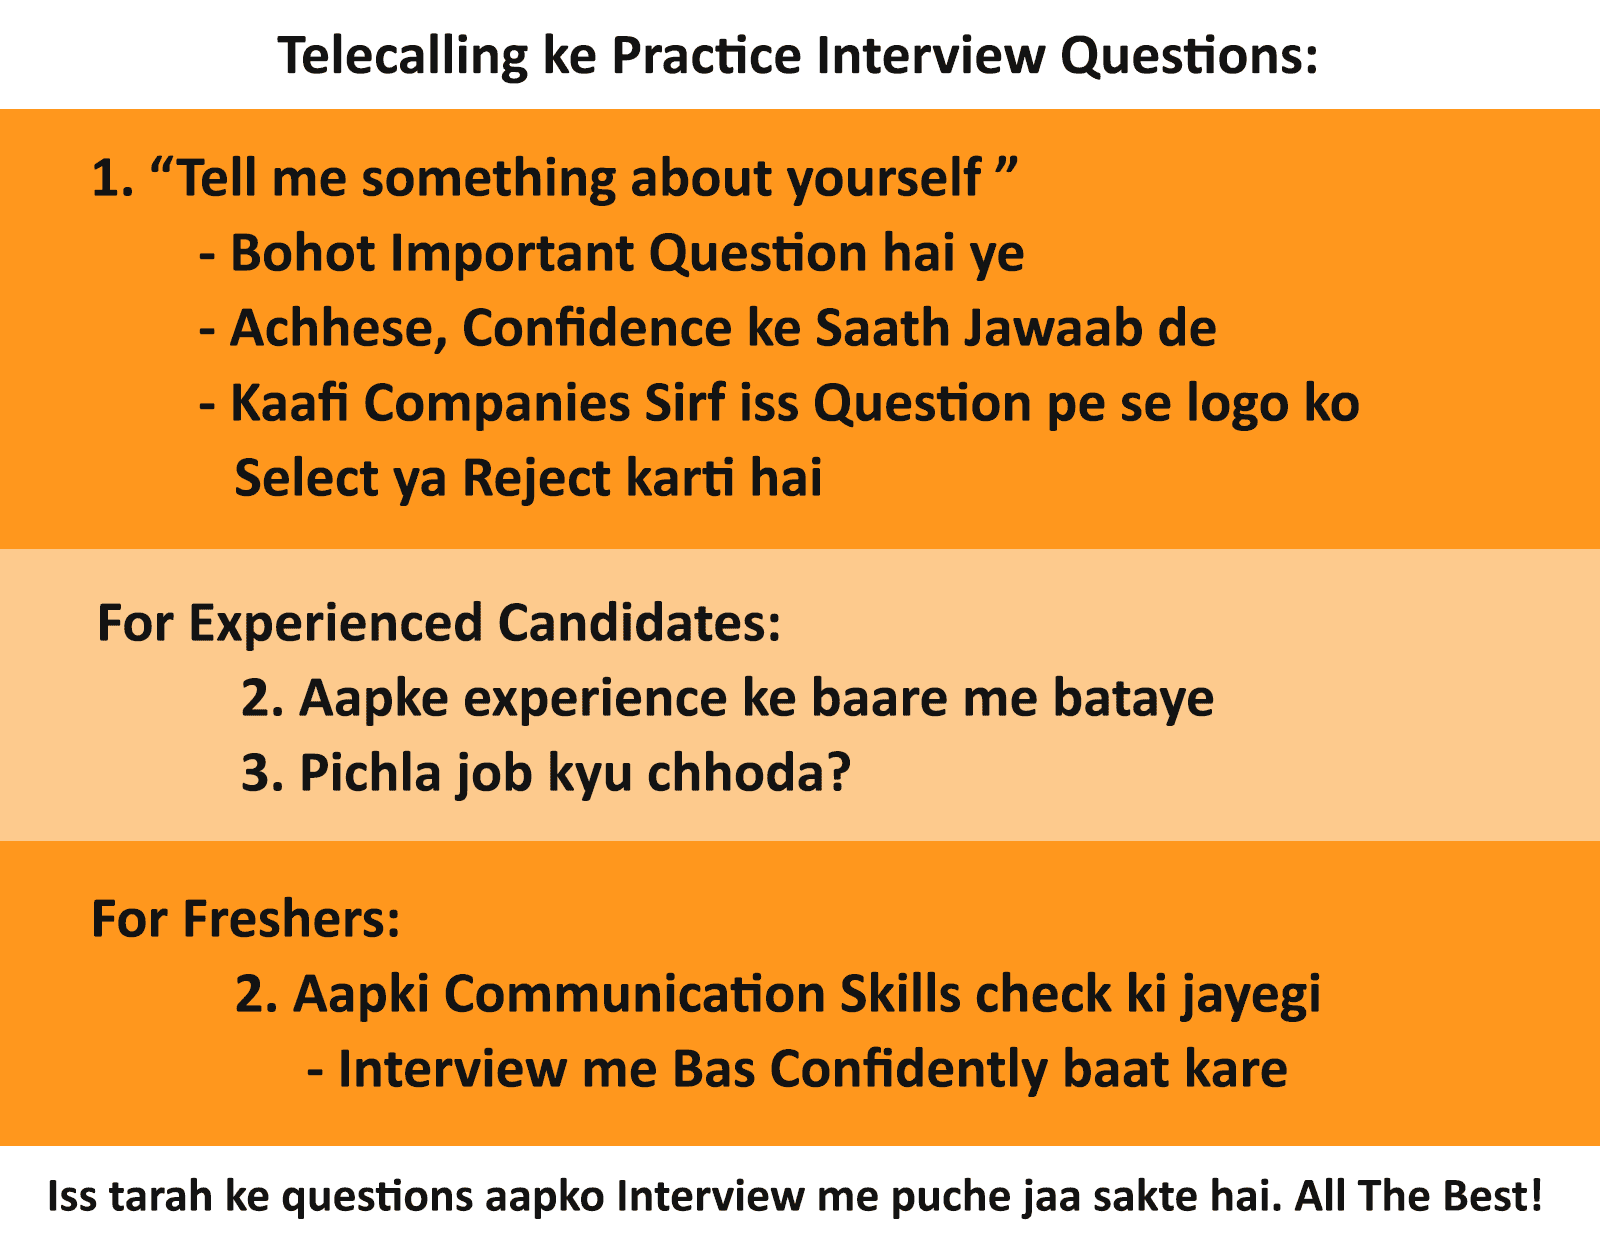 Interview Questions for Telecalling, Customer Service, Tele Sales  Jobs